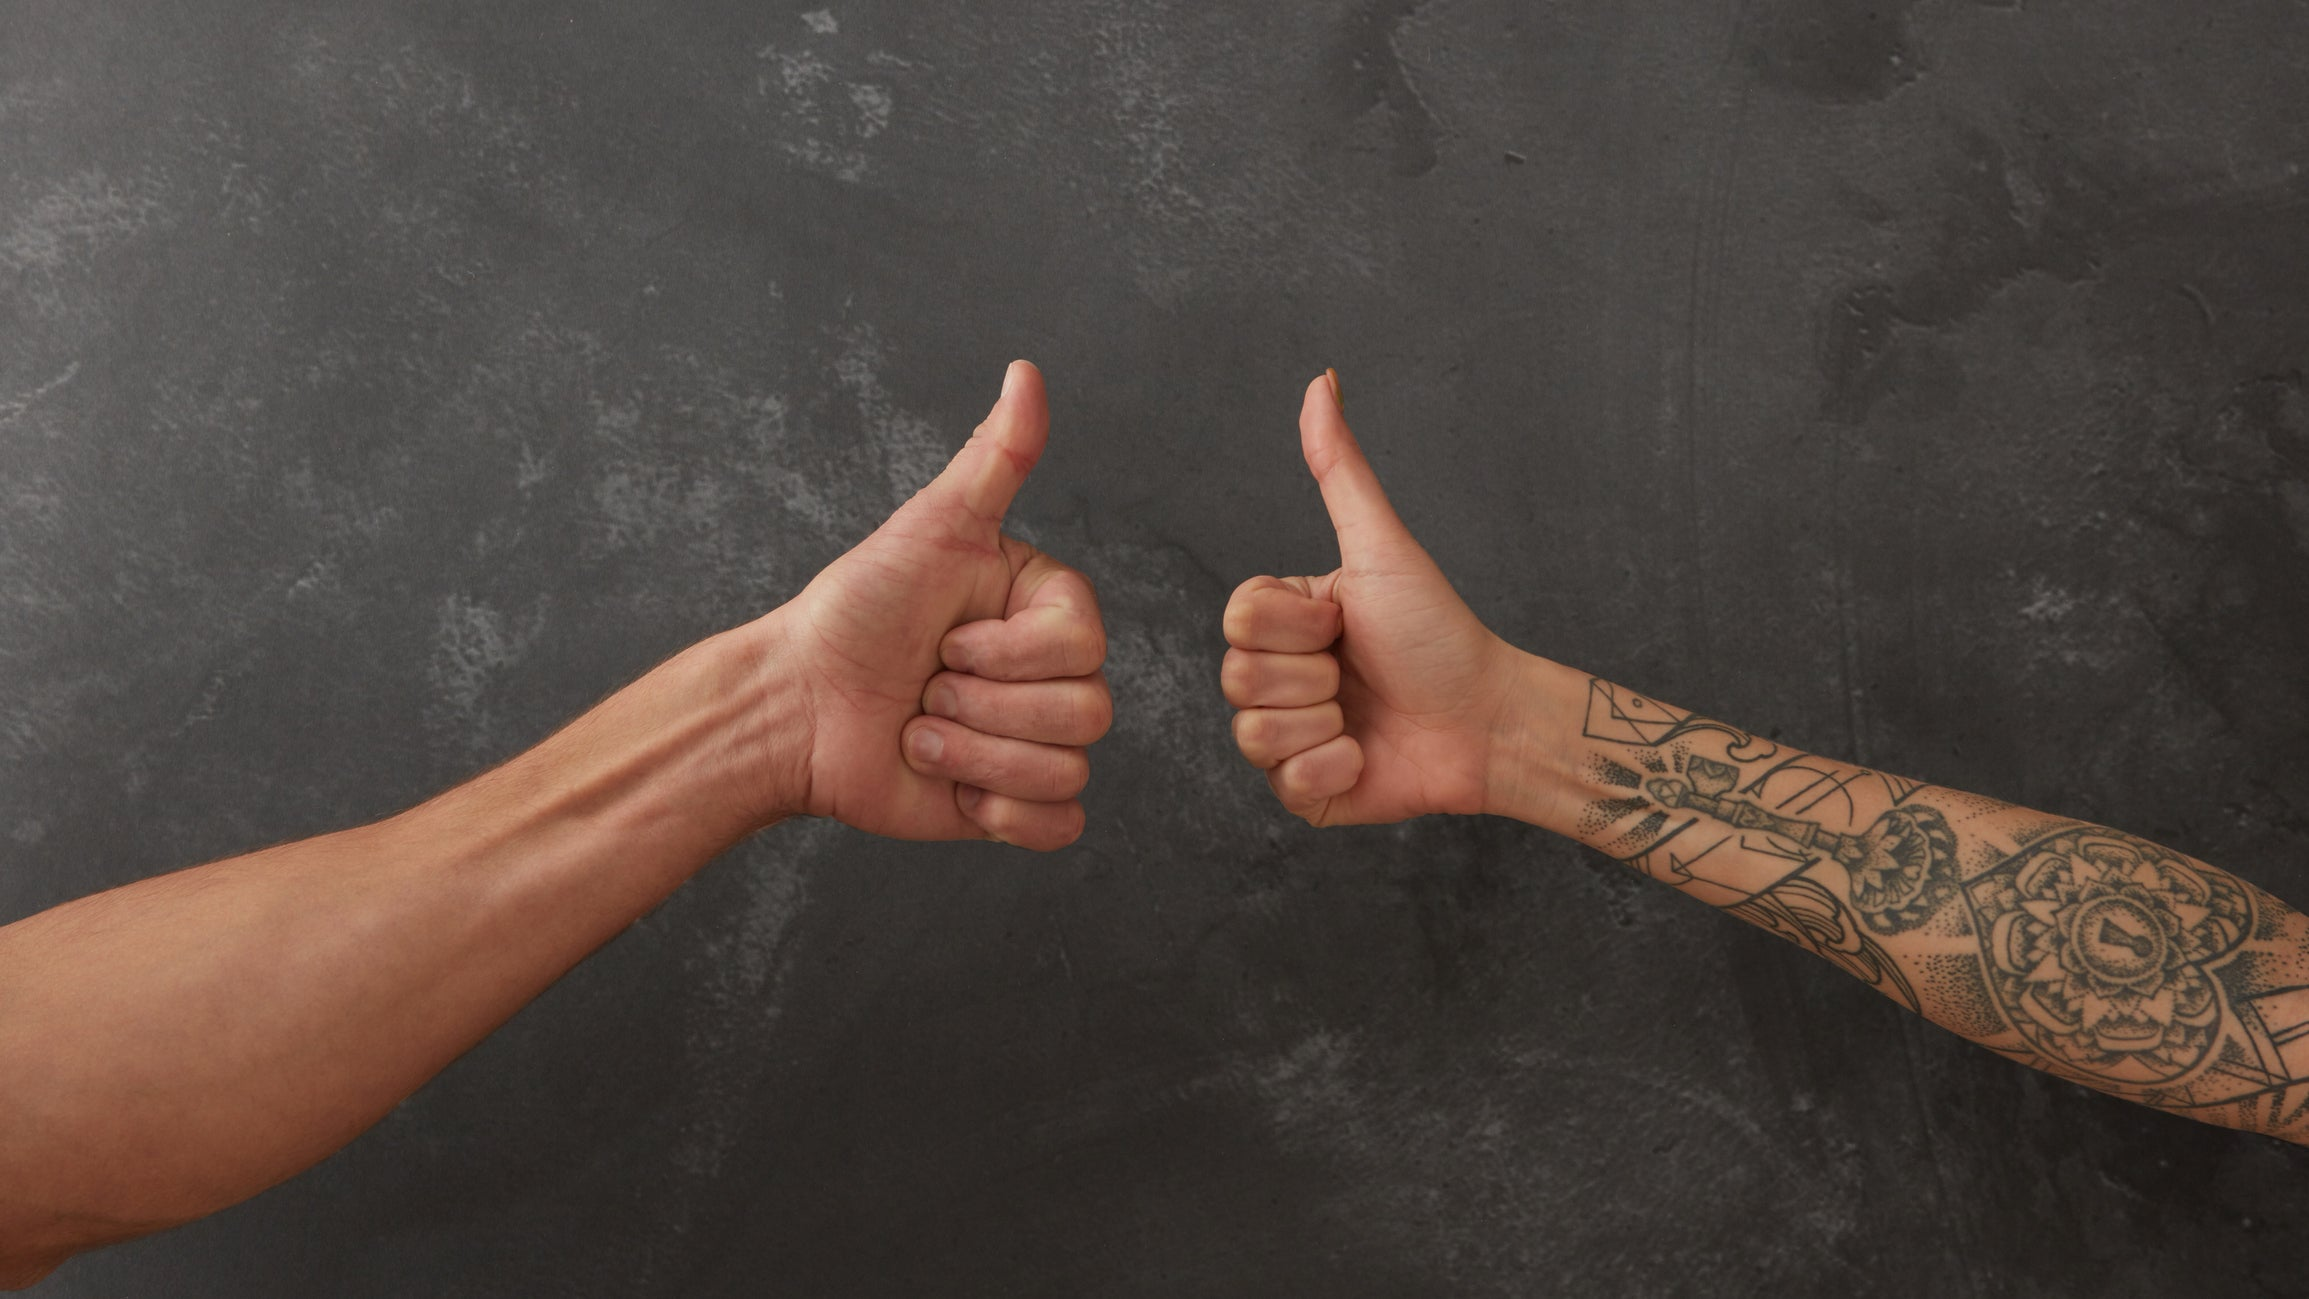 Two thumbs up, one with tattoos on the arm